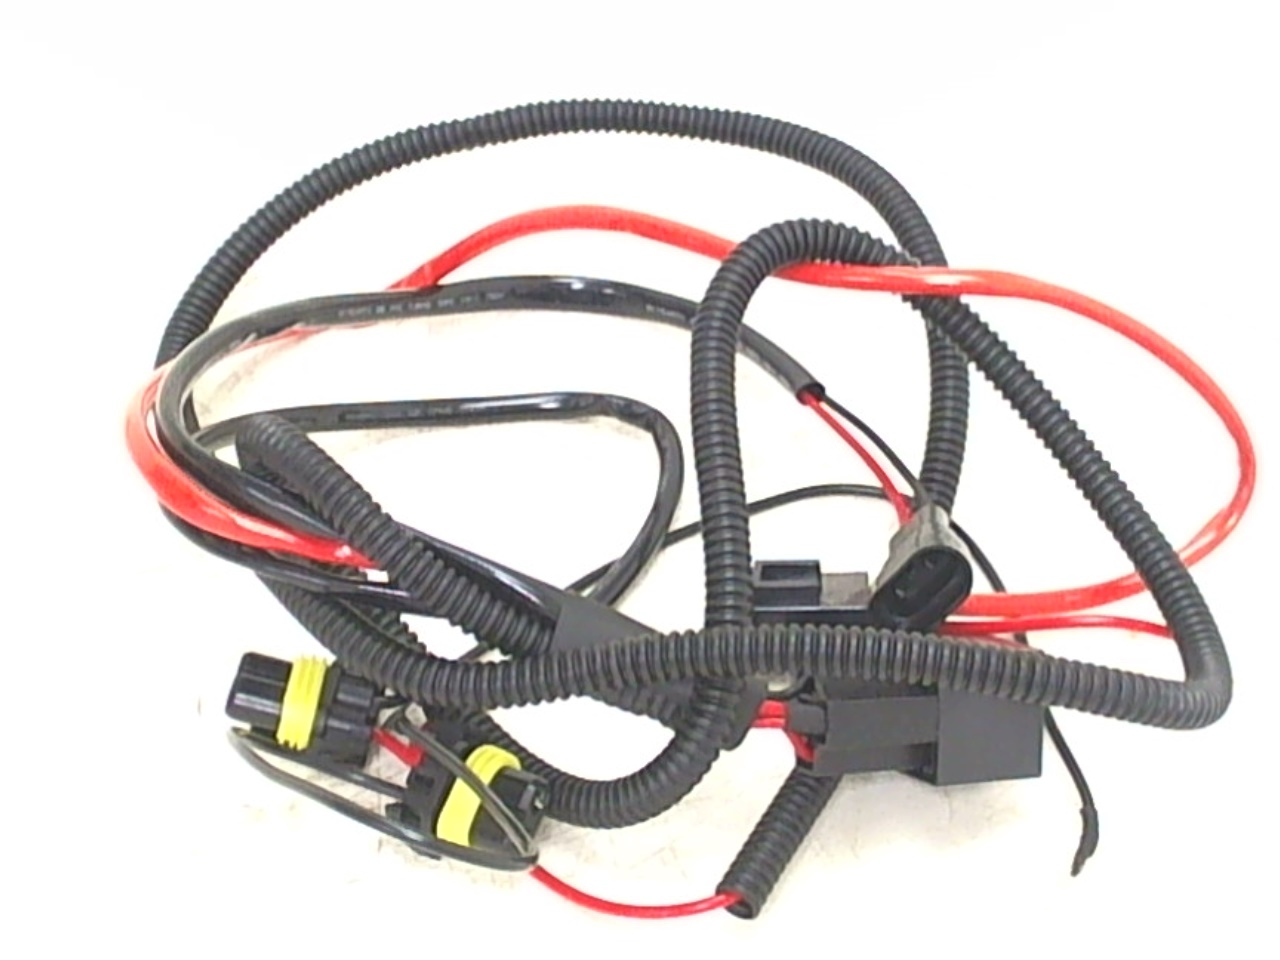 55w 75w hid conversion kit universal single beam relay wiring harness h1 h3 h ebay